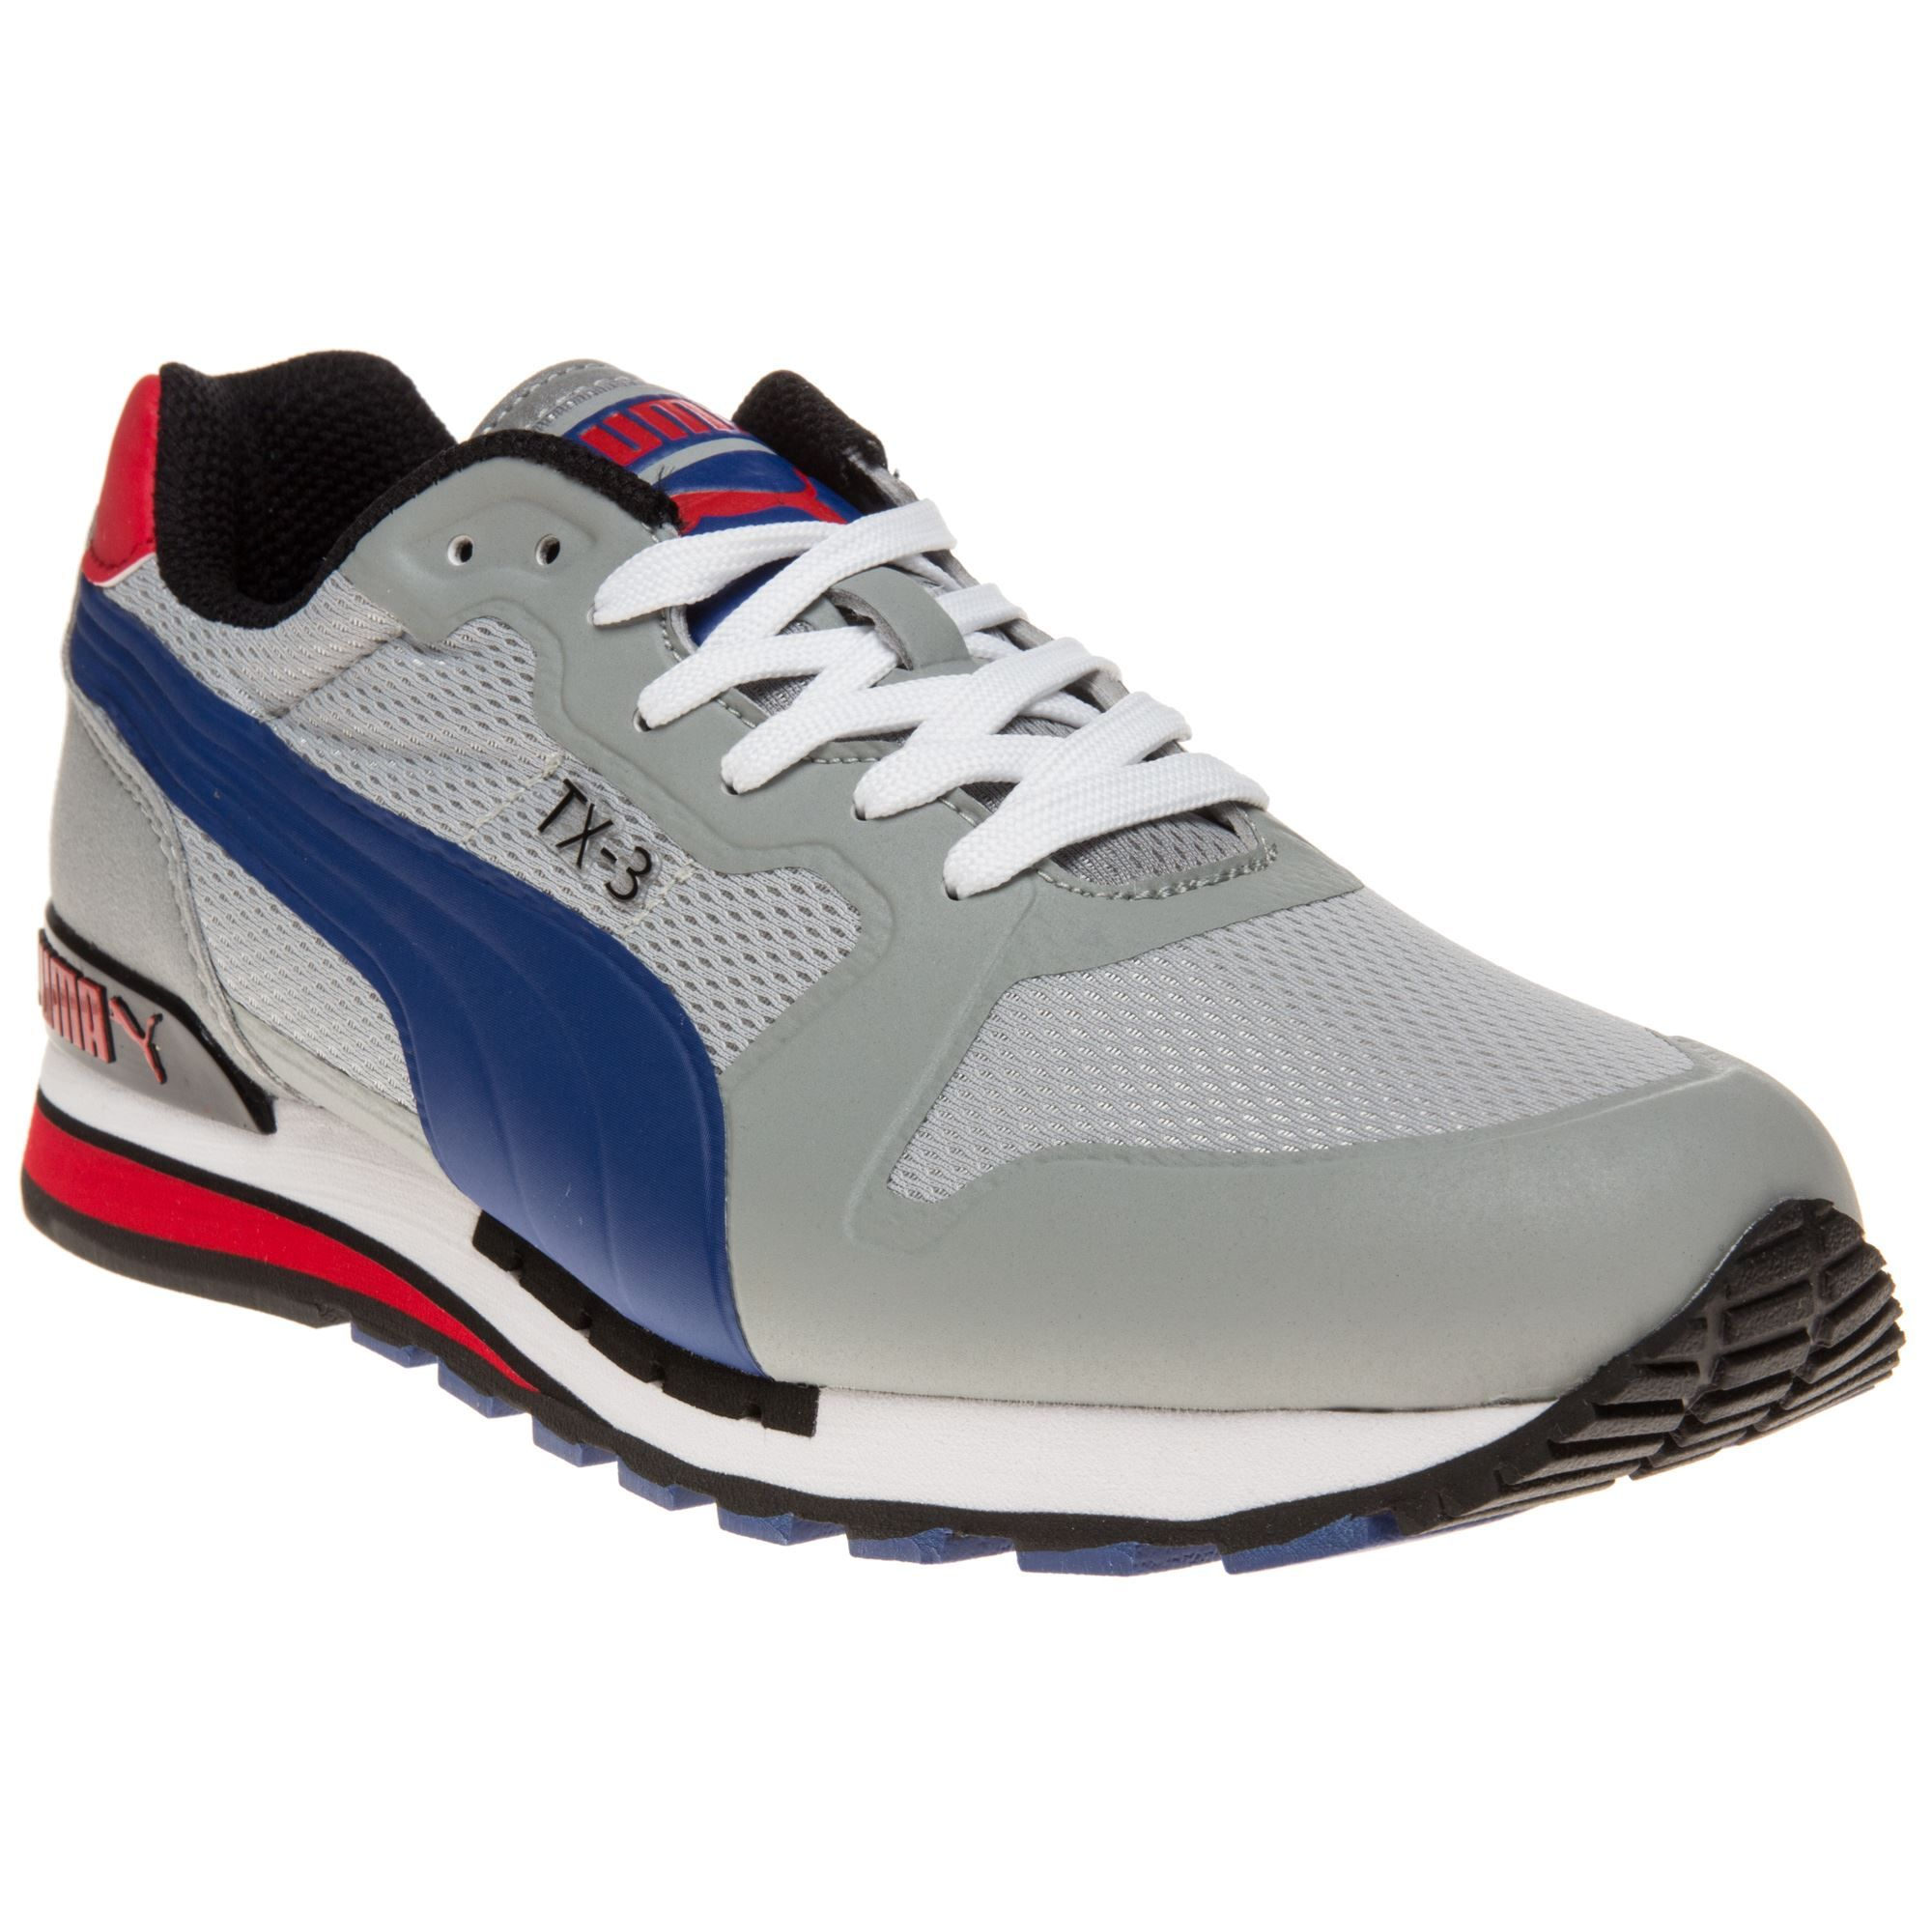 9a60681380c6 Puma Tx-3 Tech Infused Trainers - Men - SOLETRADER OUTLET